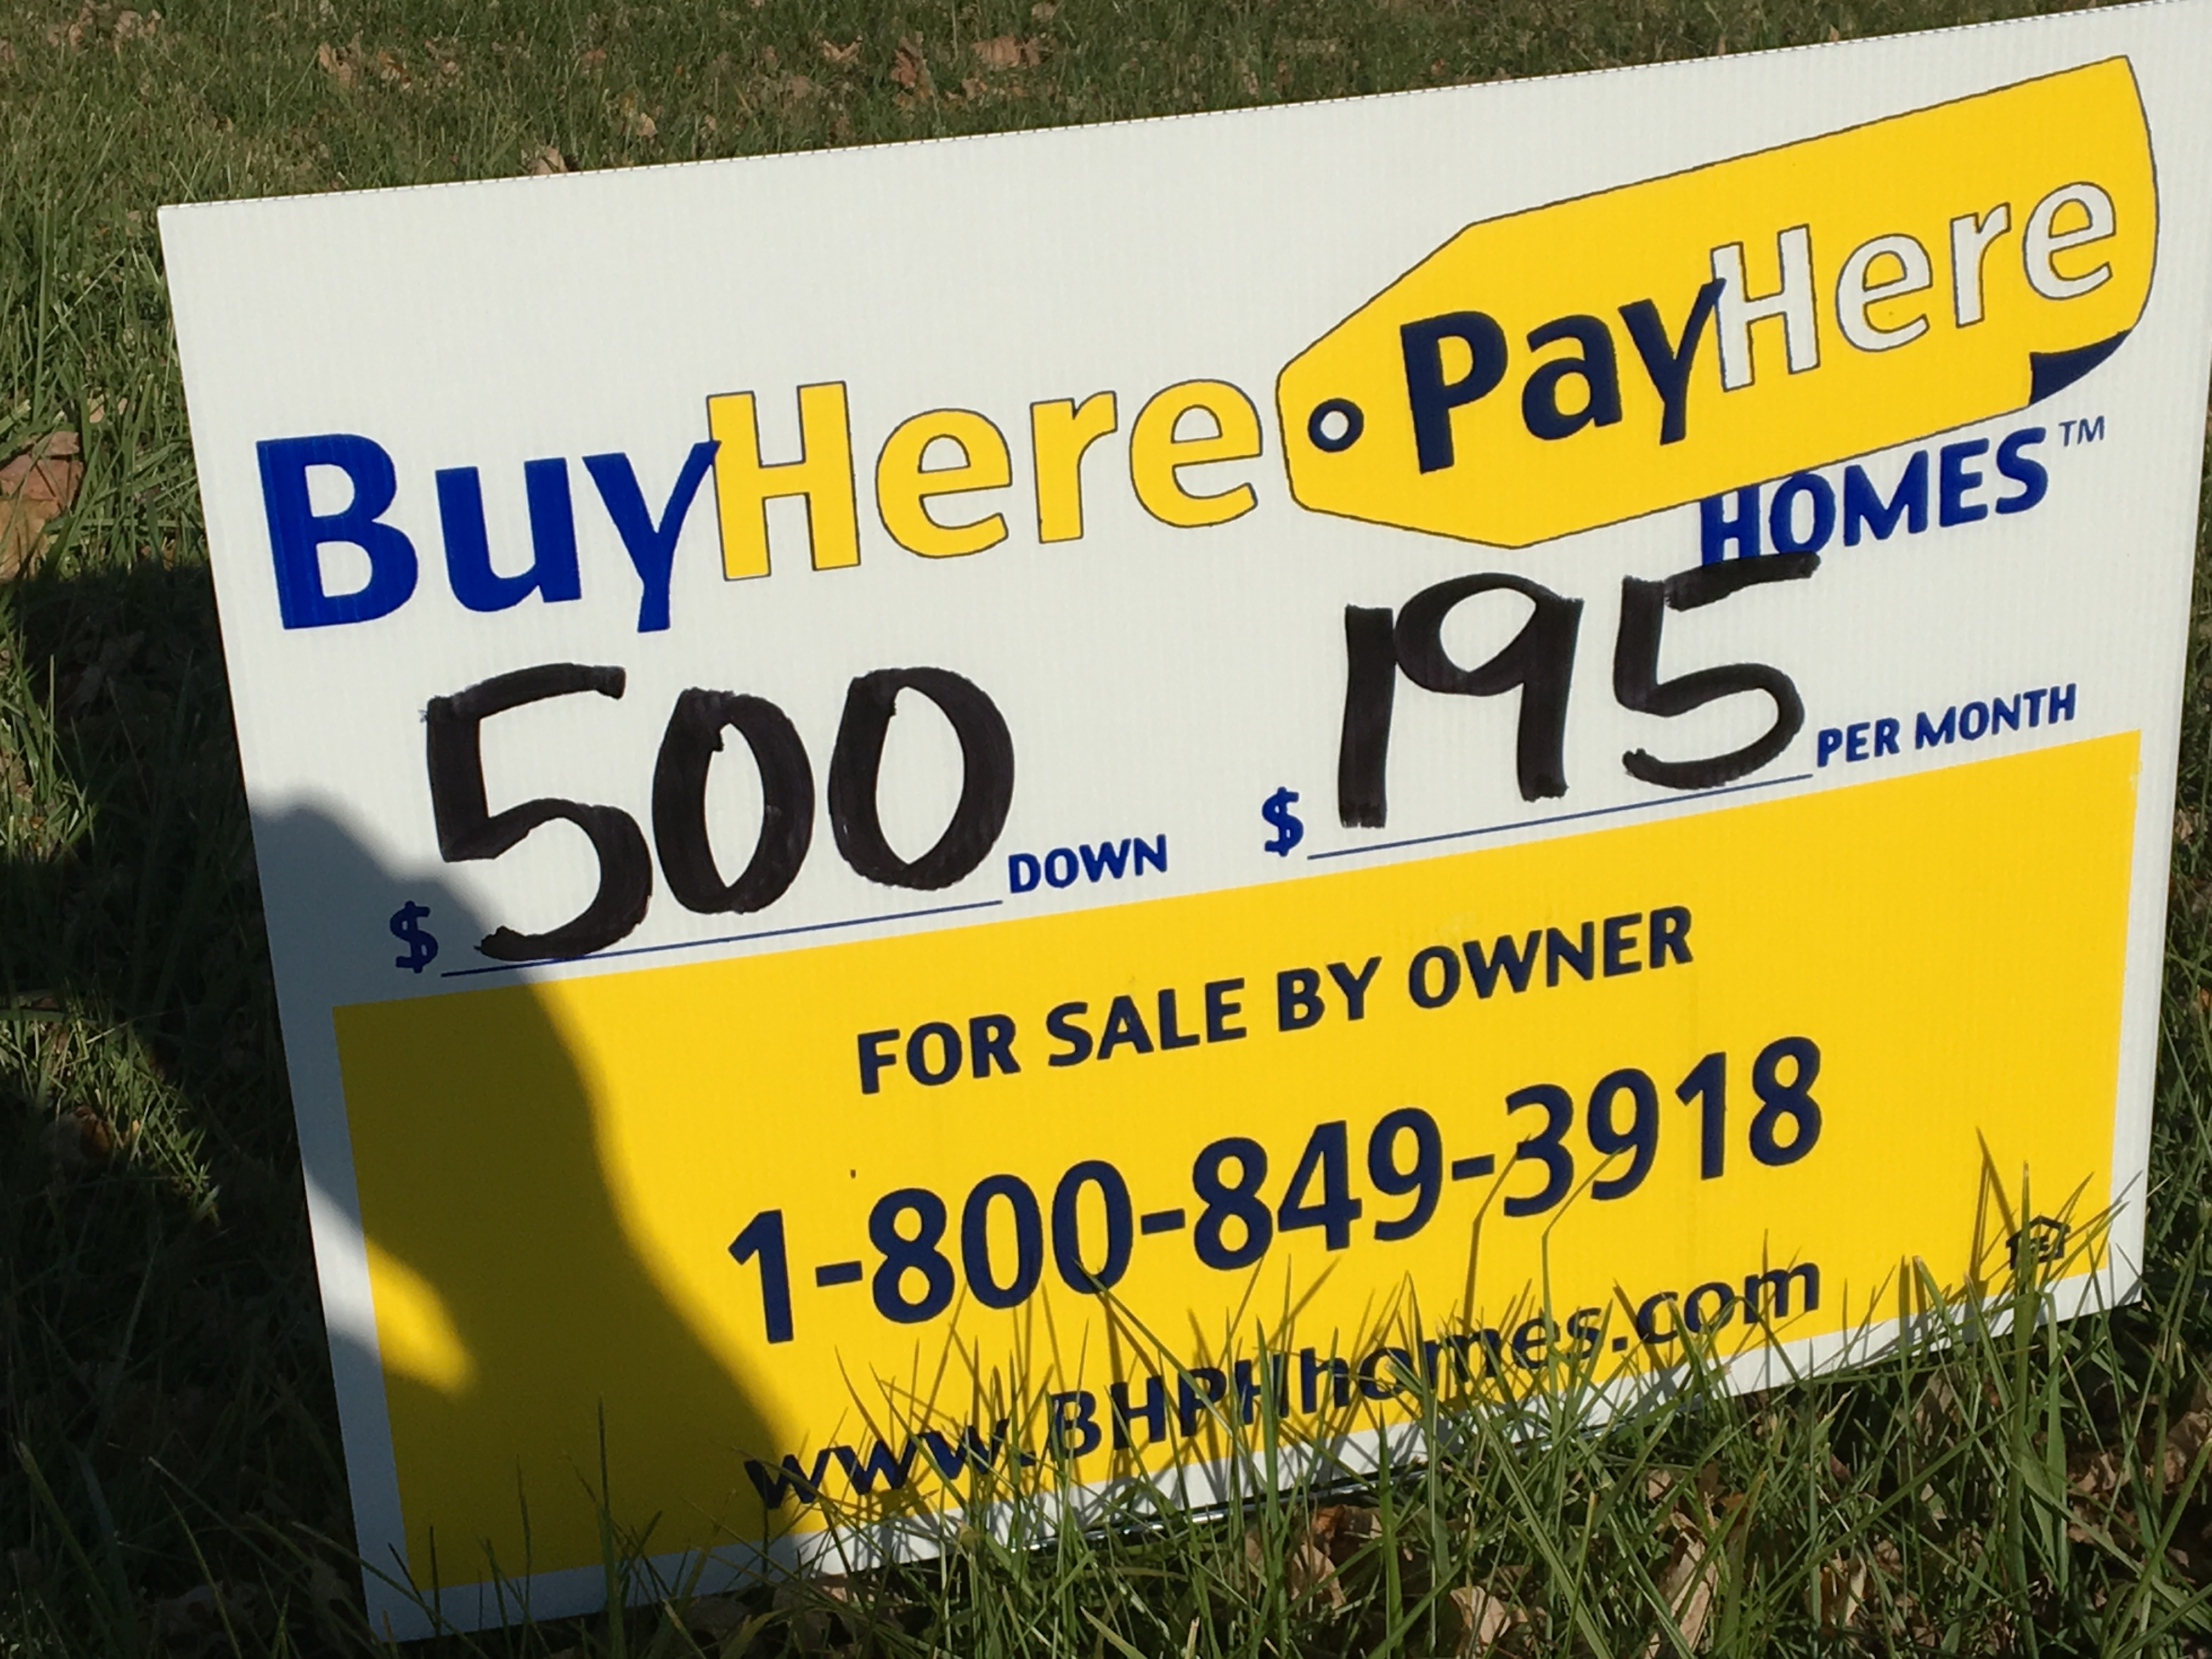 buyhere payhere homes where everybody moves in